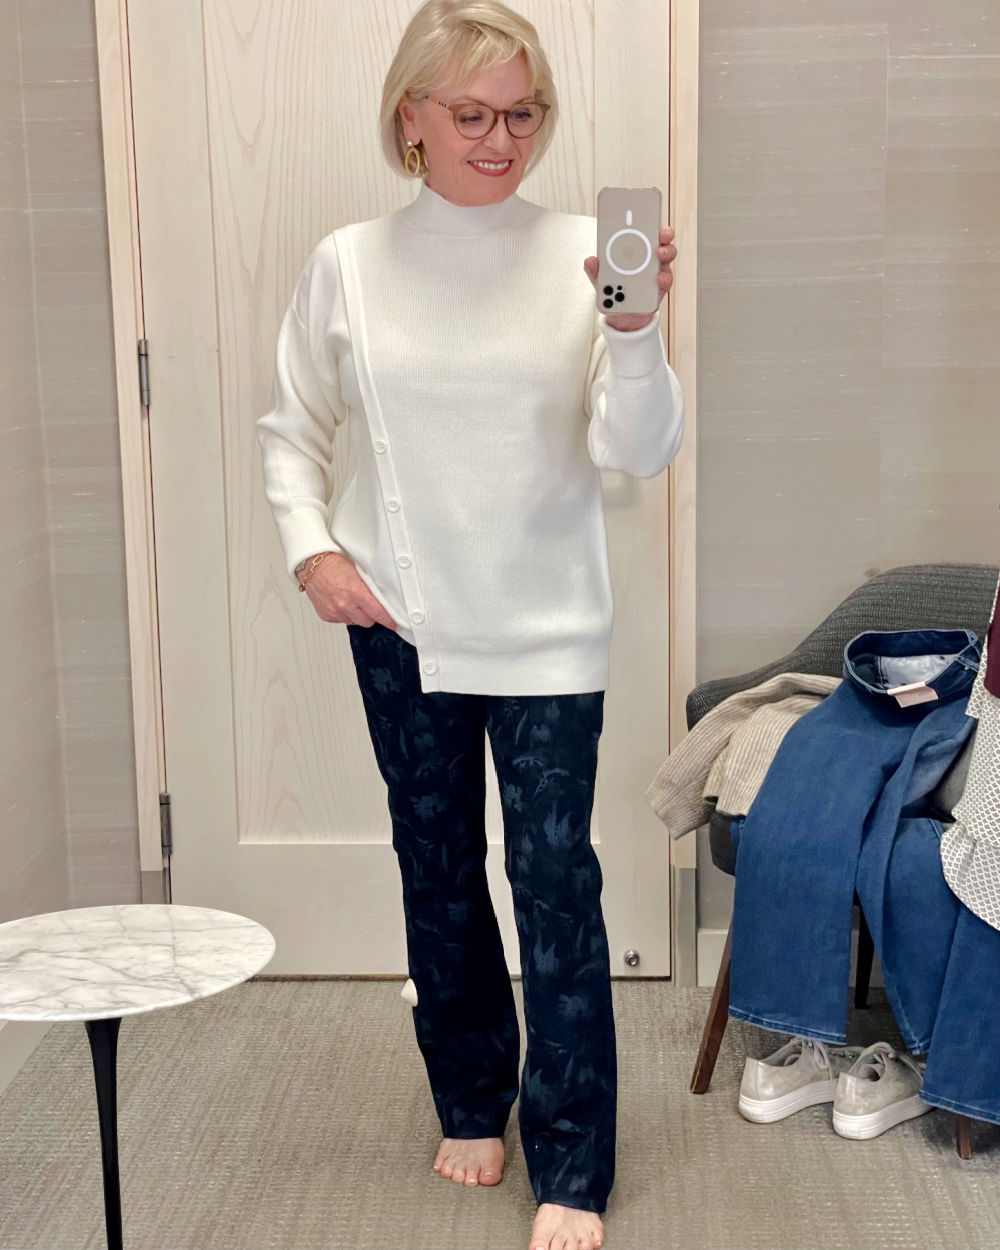 woman wearing ivory sweater and patterned jeans in Nordstrom dressing room